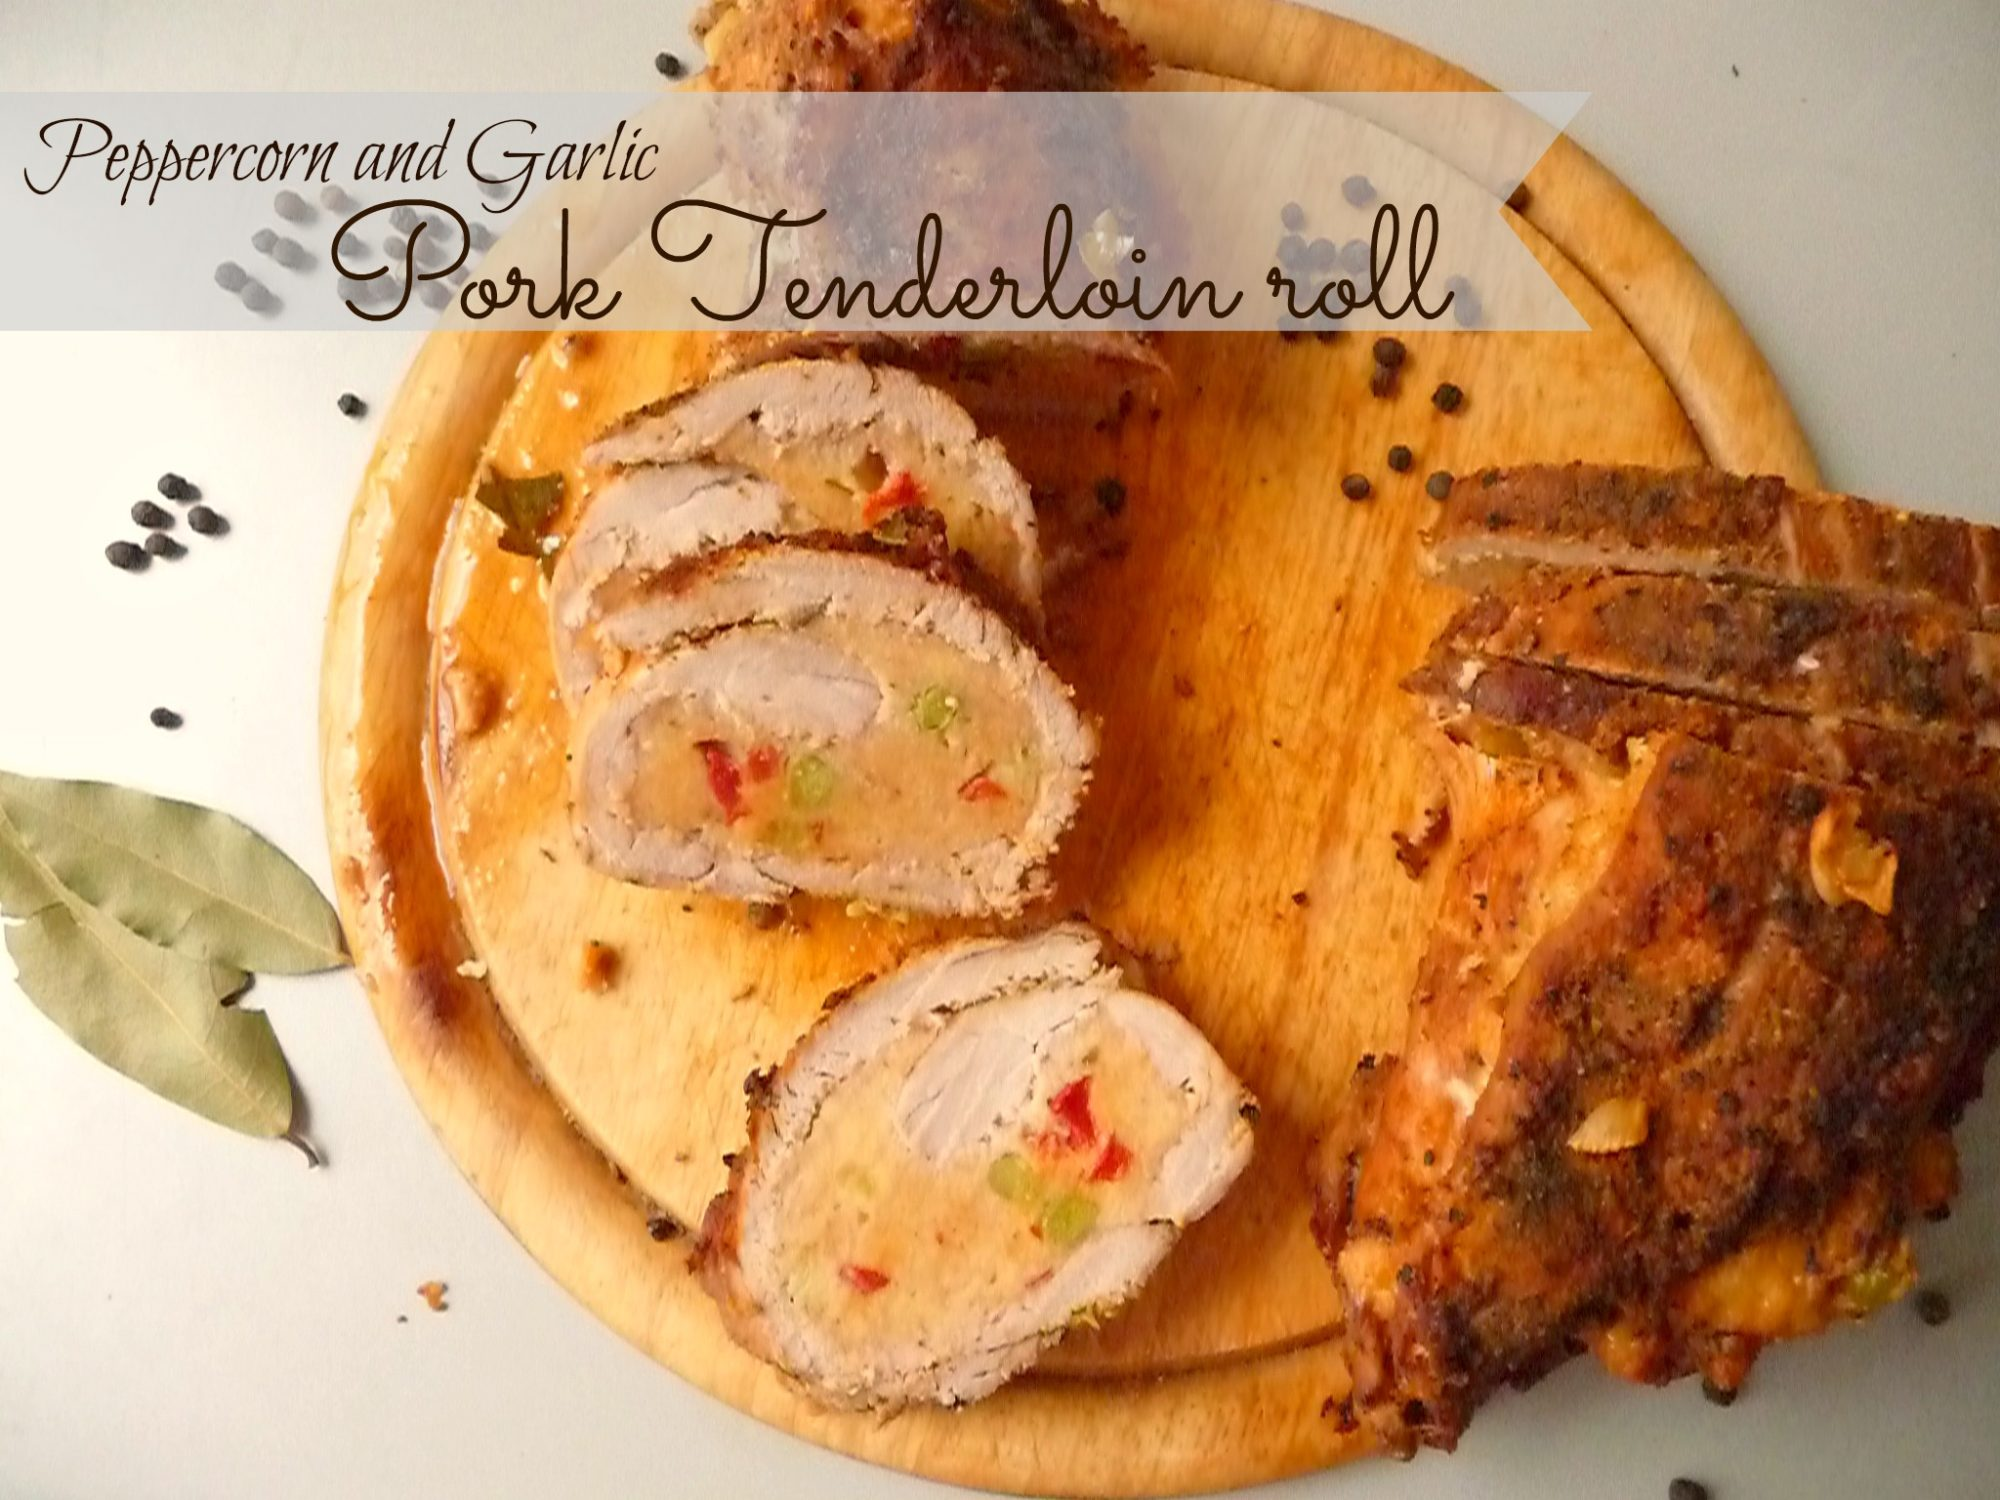 Peppercorn and garlic pork tenderloin roll